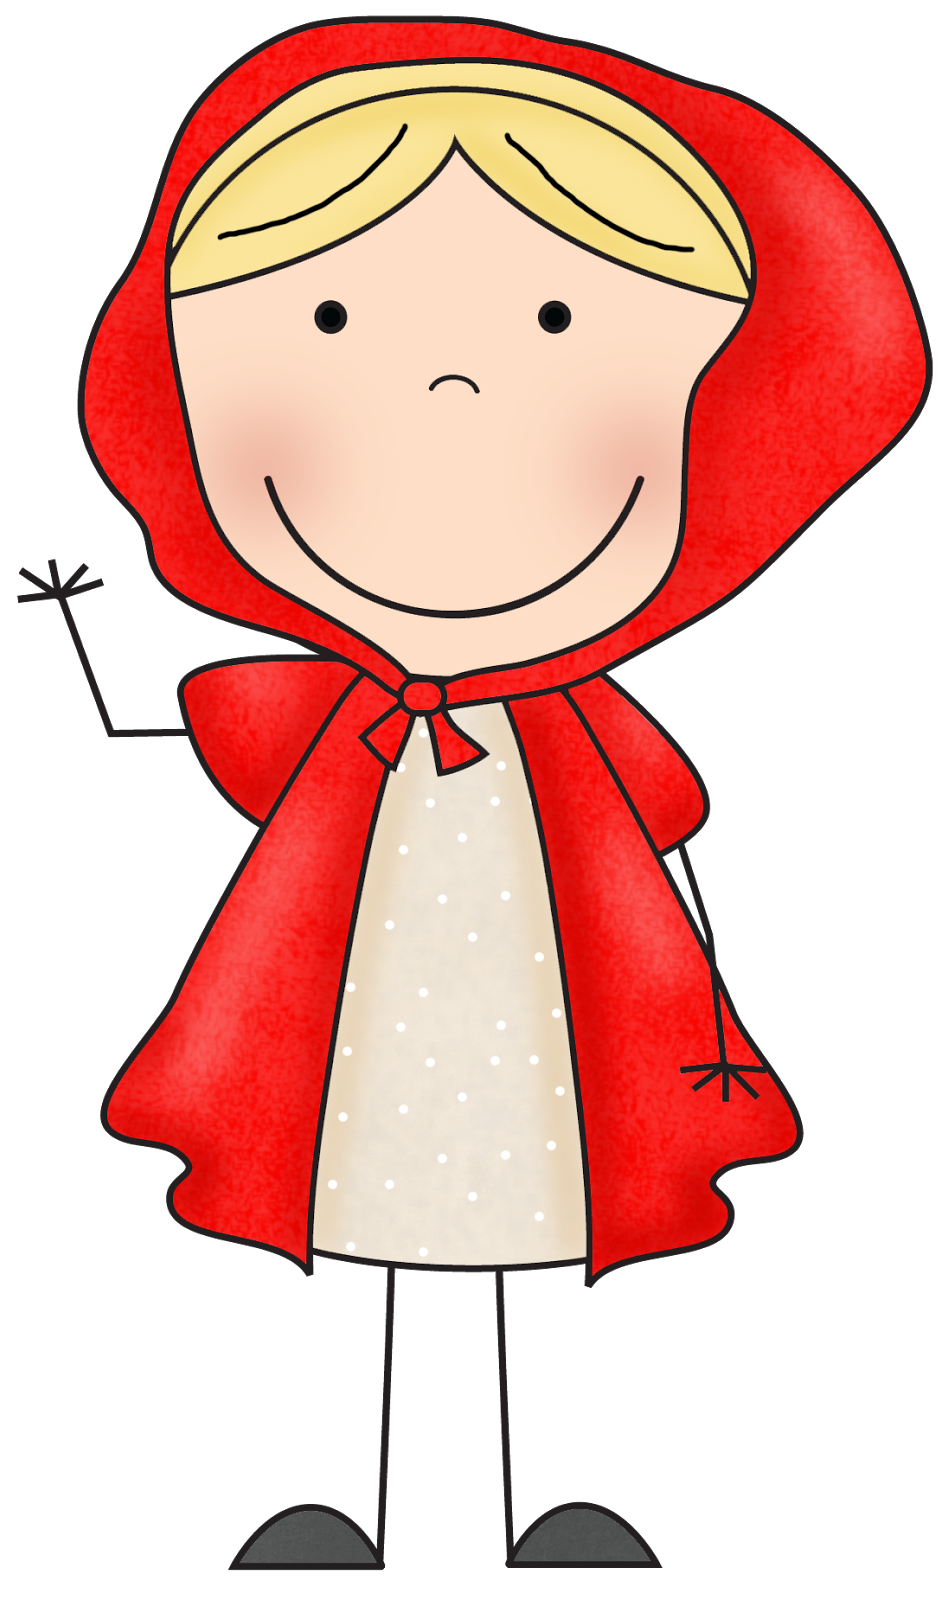 Red Riding Hood Clipart Cliparts Co-Red Riding Hood Clipart Cliparts Co-11